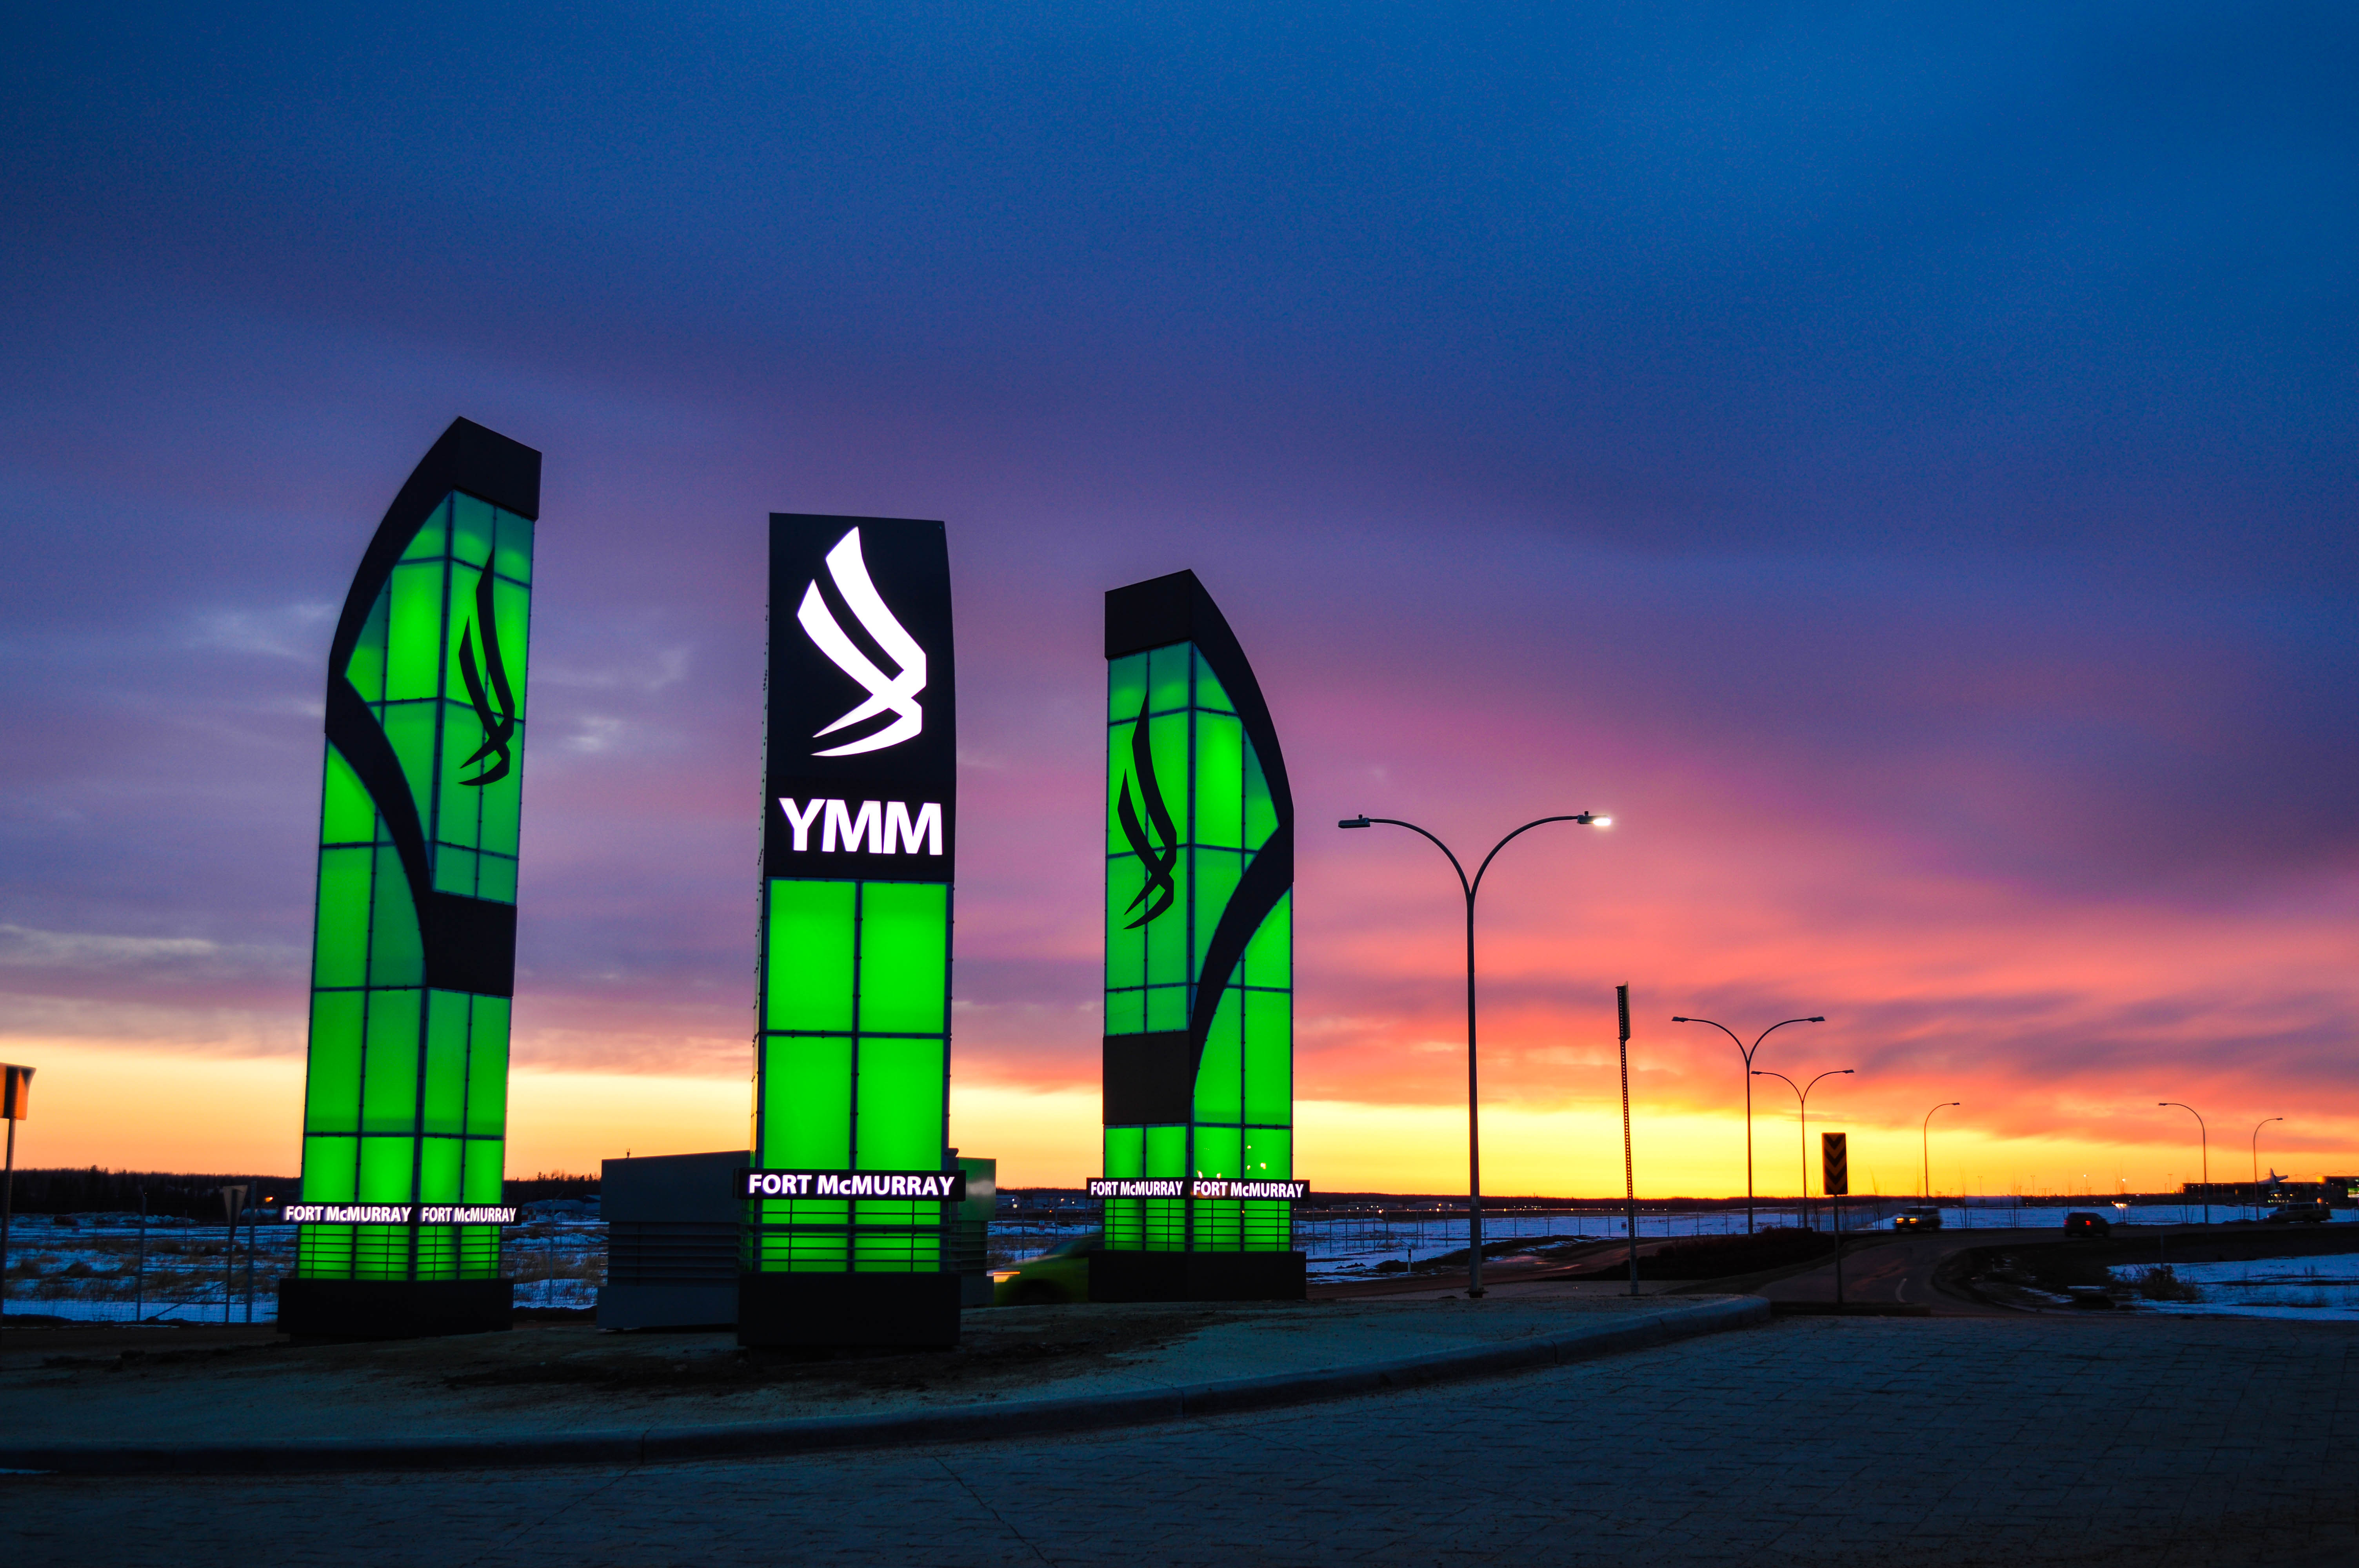 YMM Airport